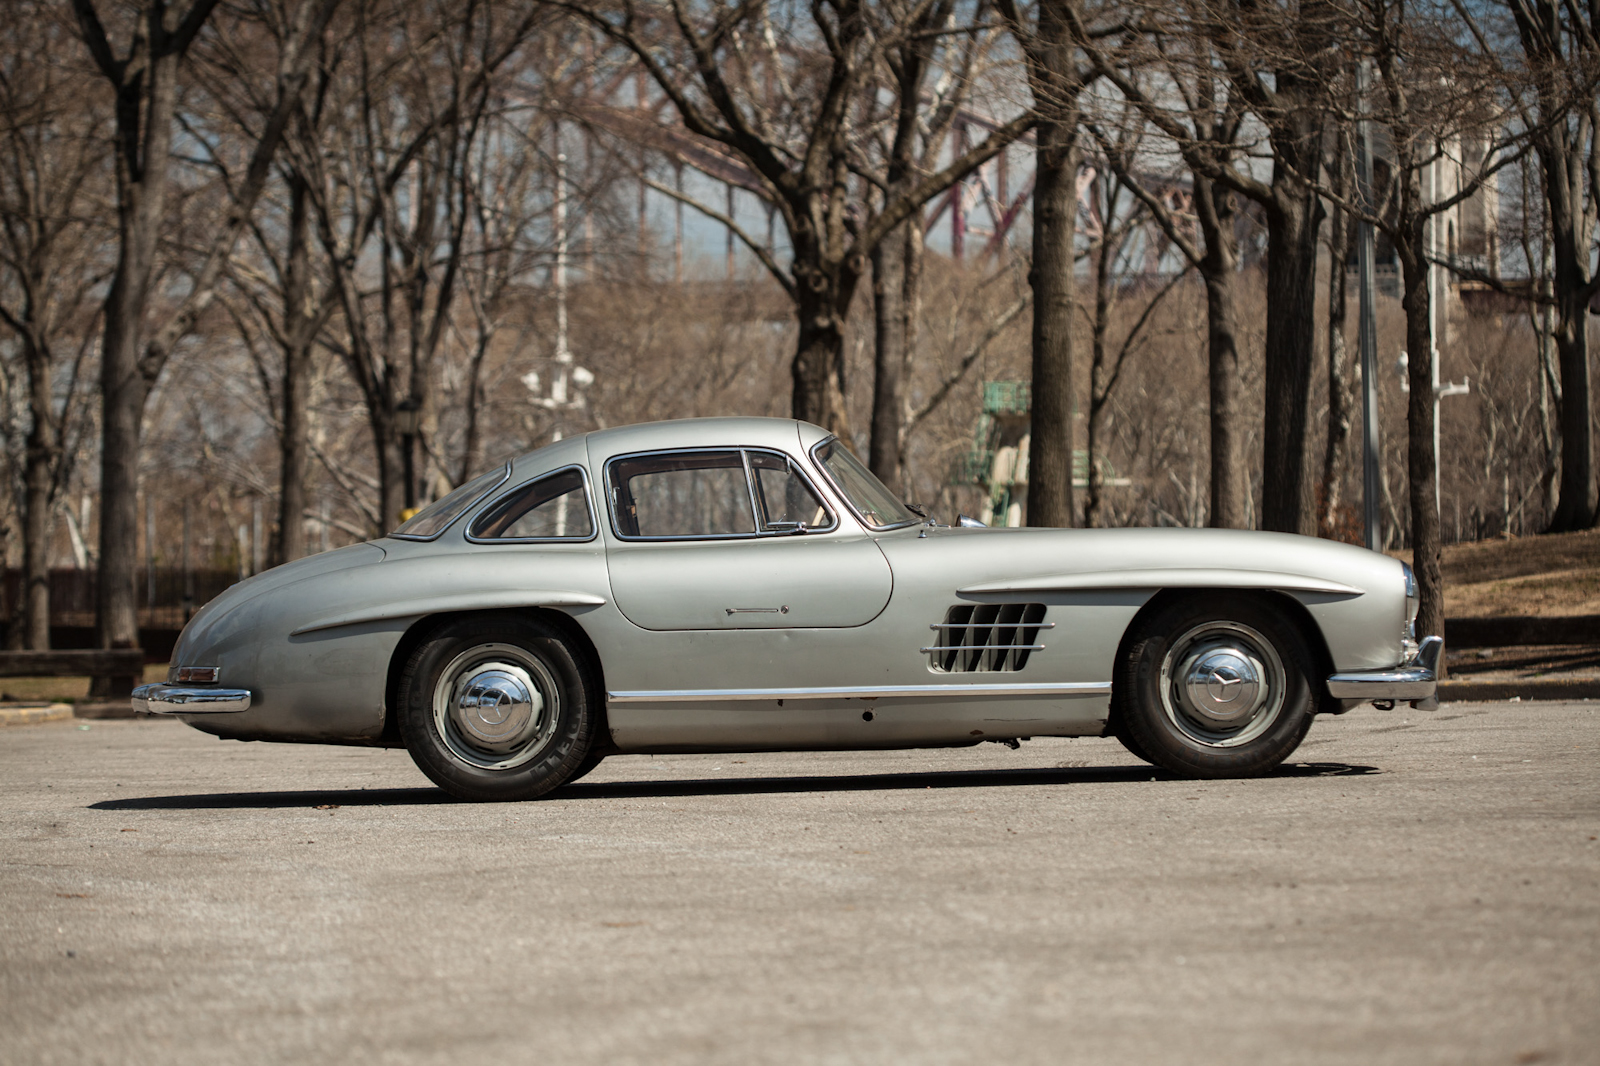 1955 mercedes benz 300sl gullwing silver arrow cars ltd for Mercedes benz 300sl gullwing for sale